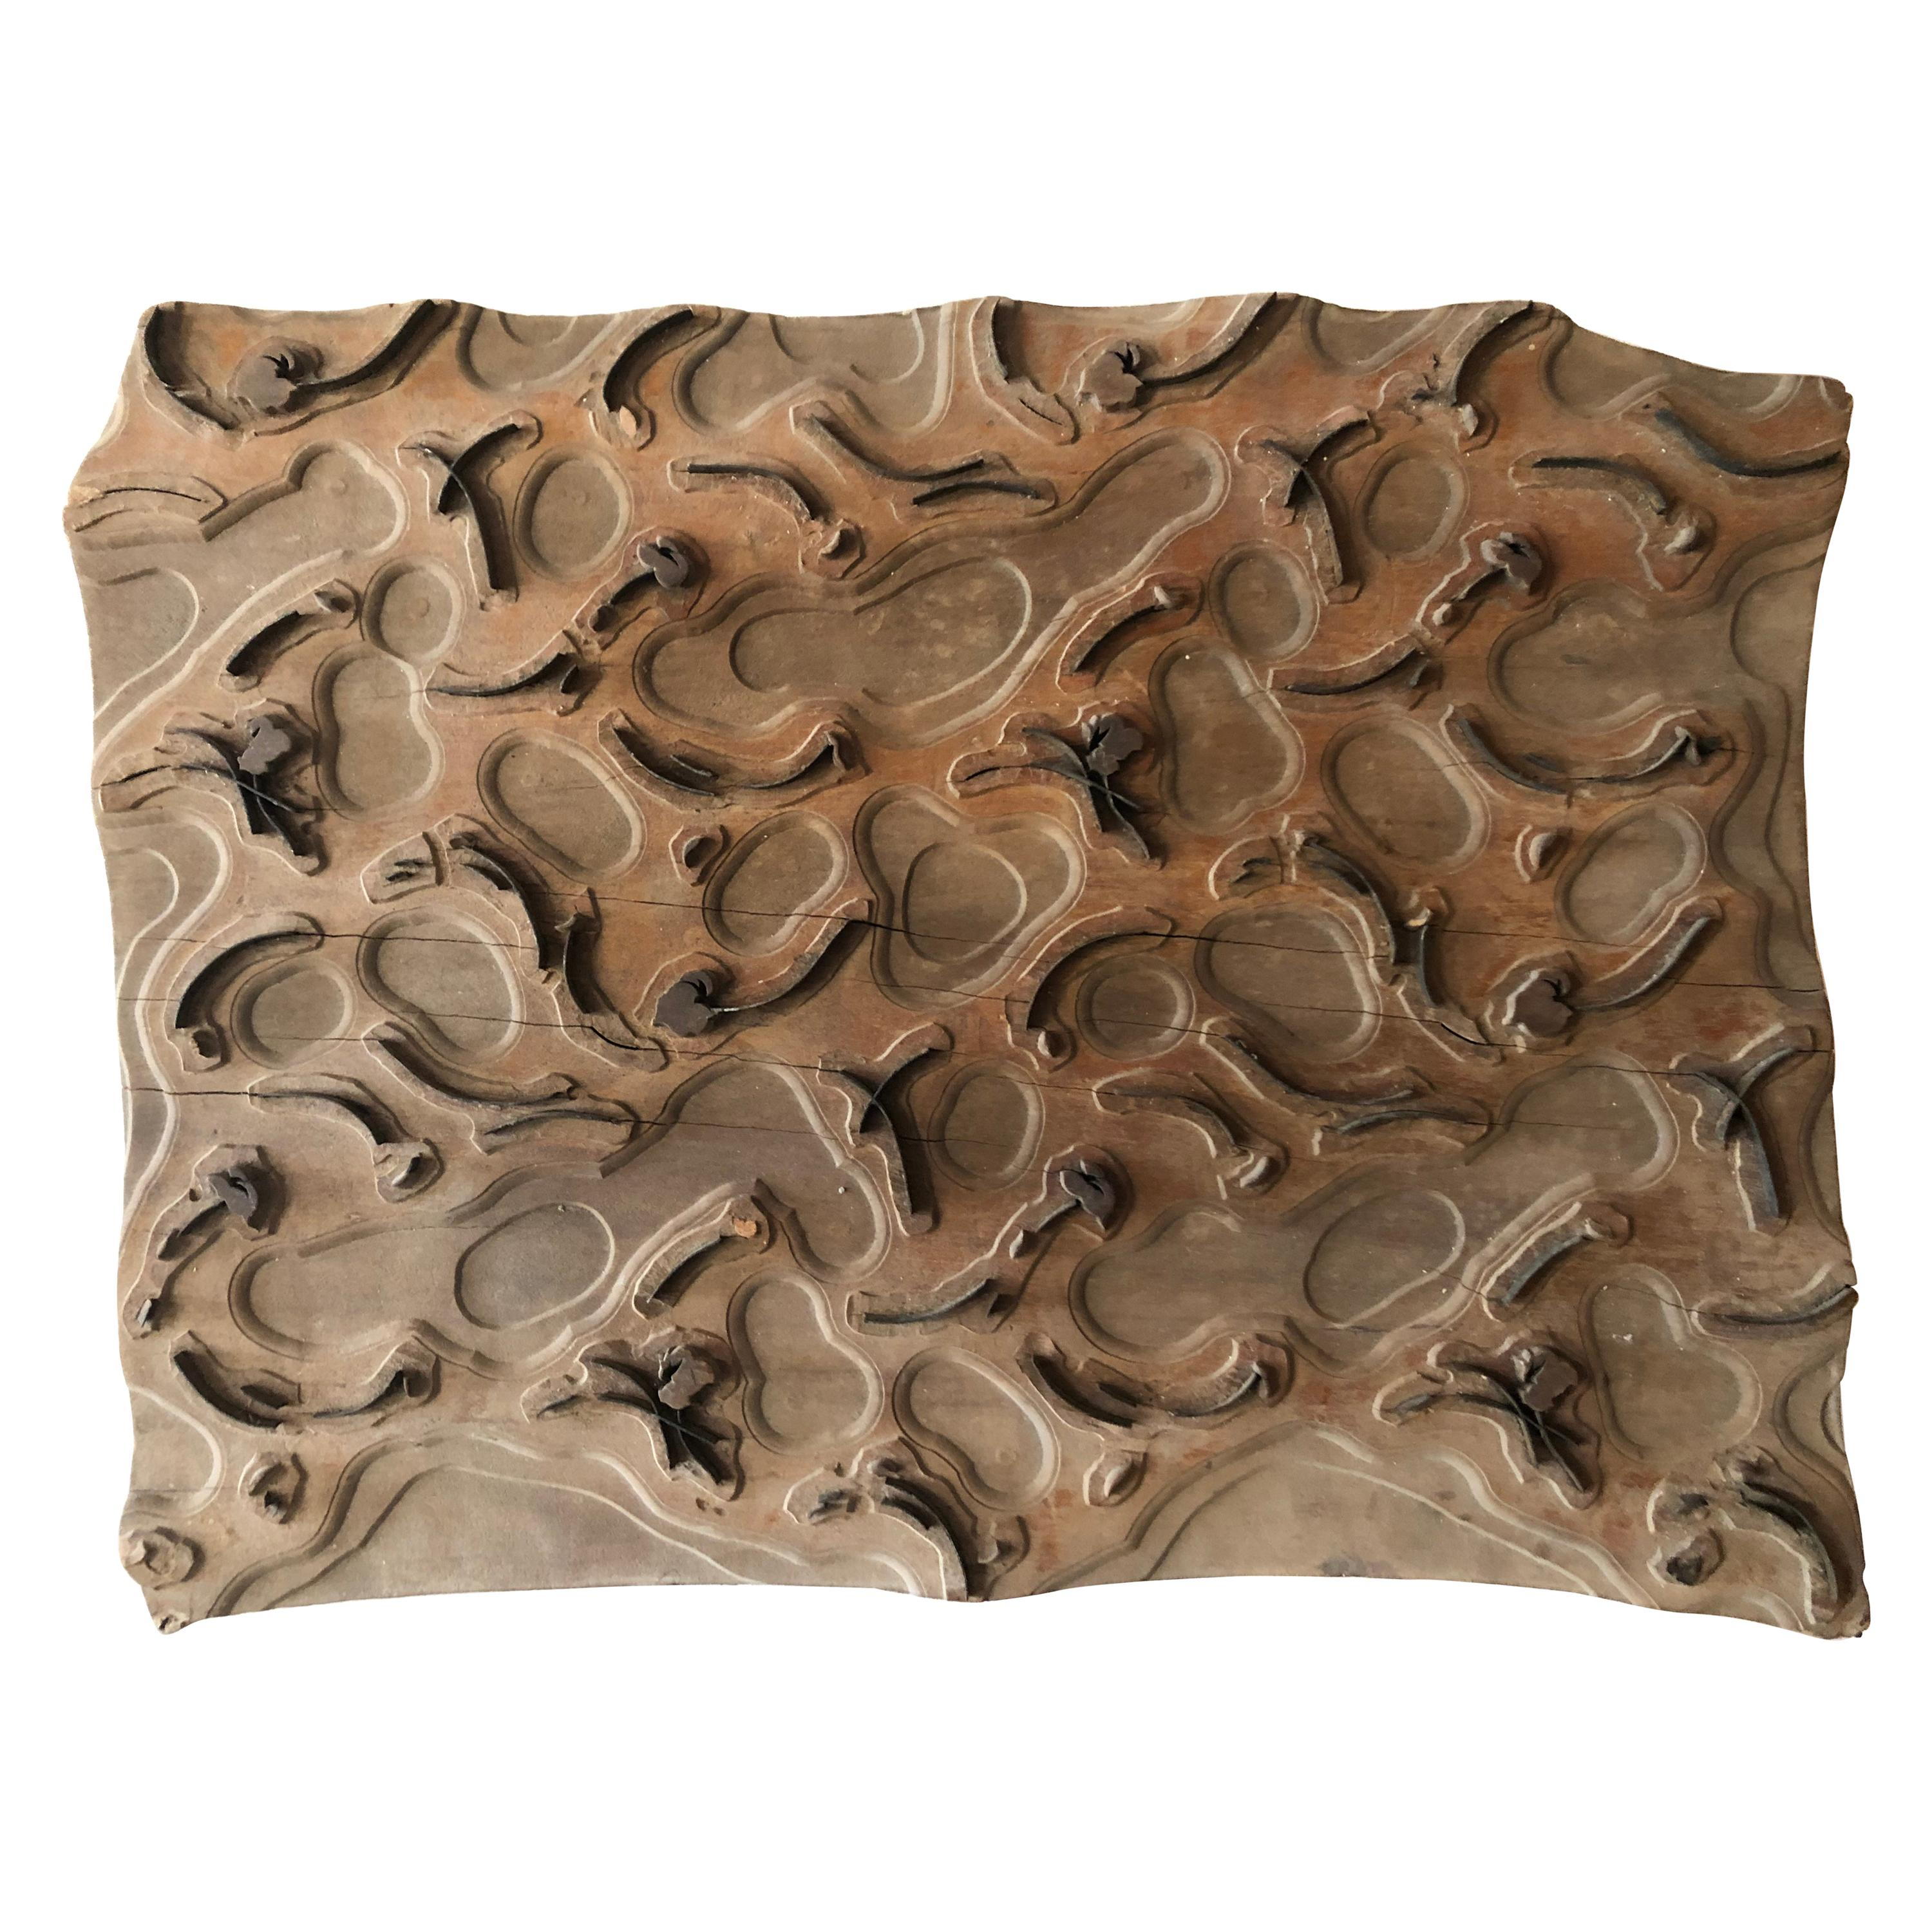 Bianchini Ferier French Fabric House Hand Carved Wood Block